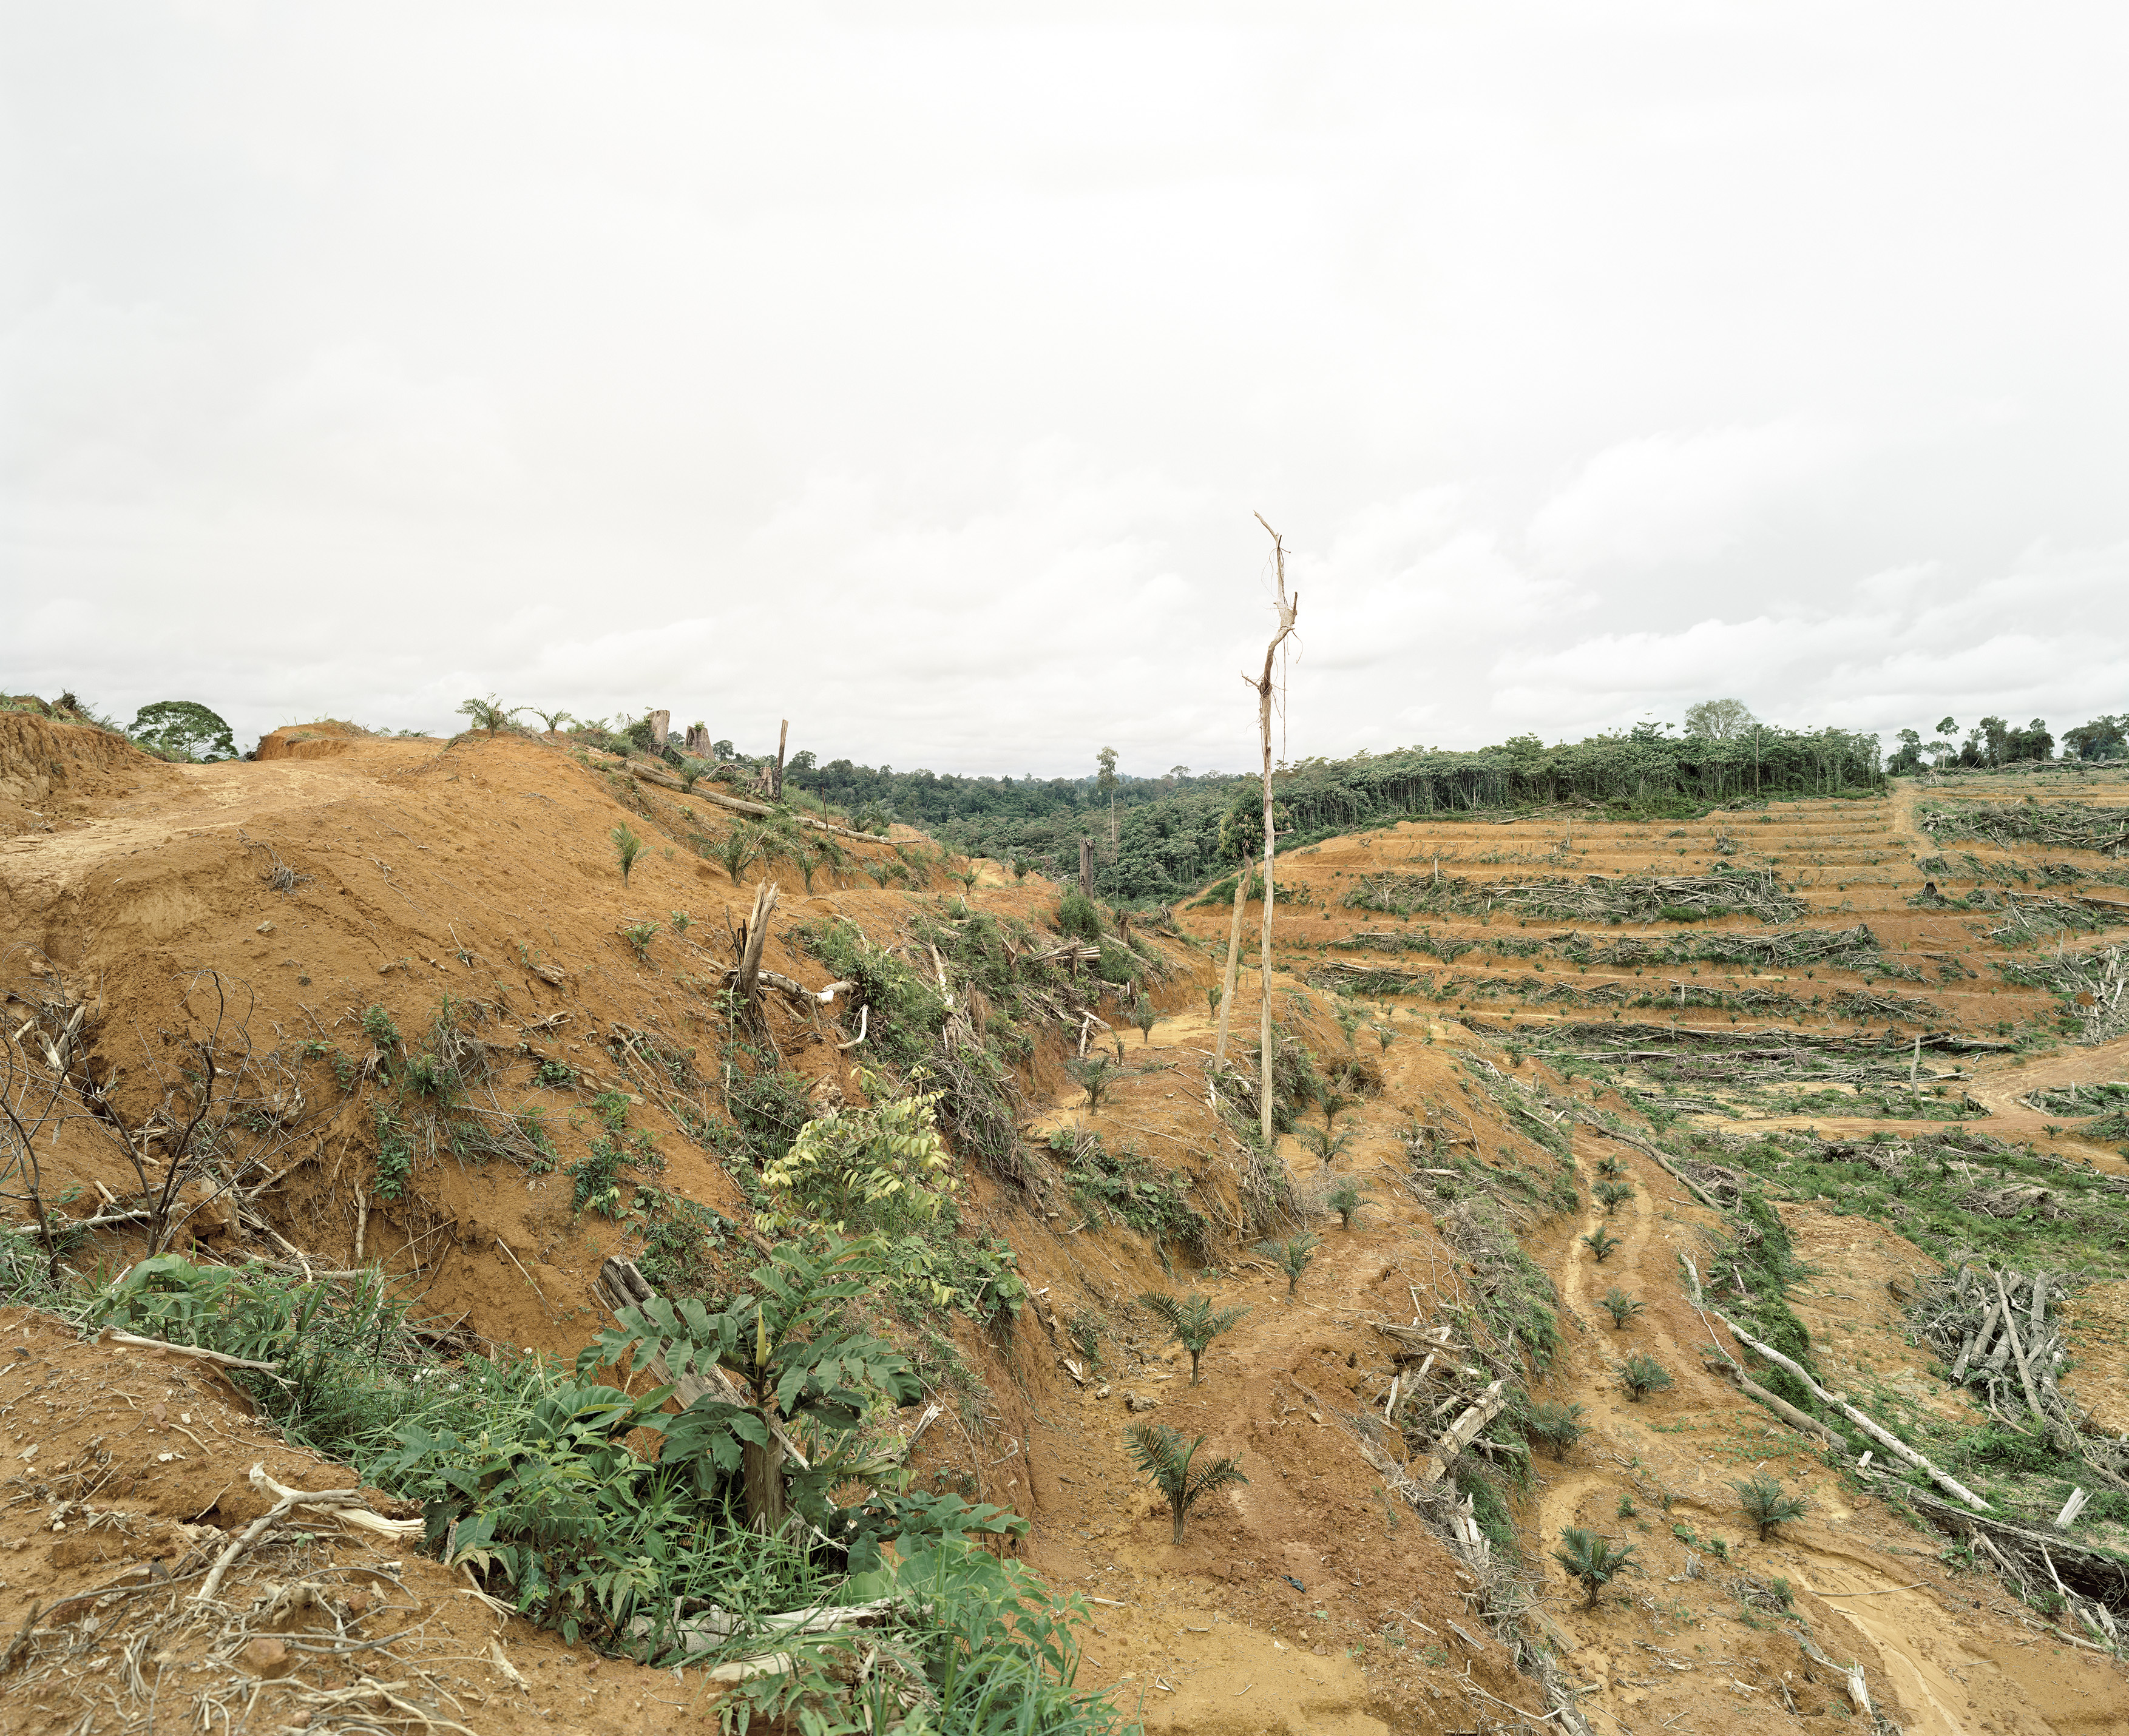 Illegal Deforestation Of Primary Forest, Tumban Karan, Central Kalimantan, Indonesia, 03/2012S 1° 22' 58'', E 112° 41' 01